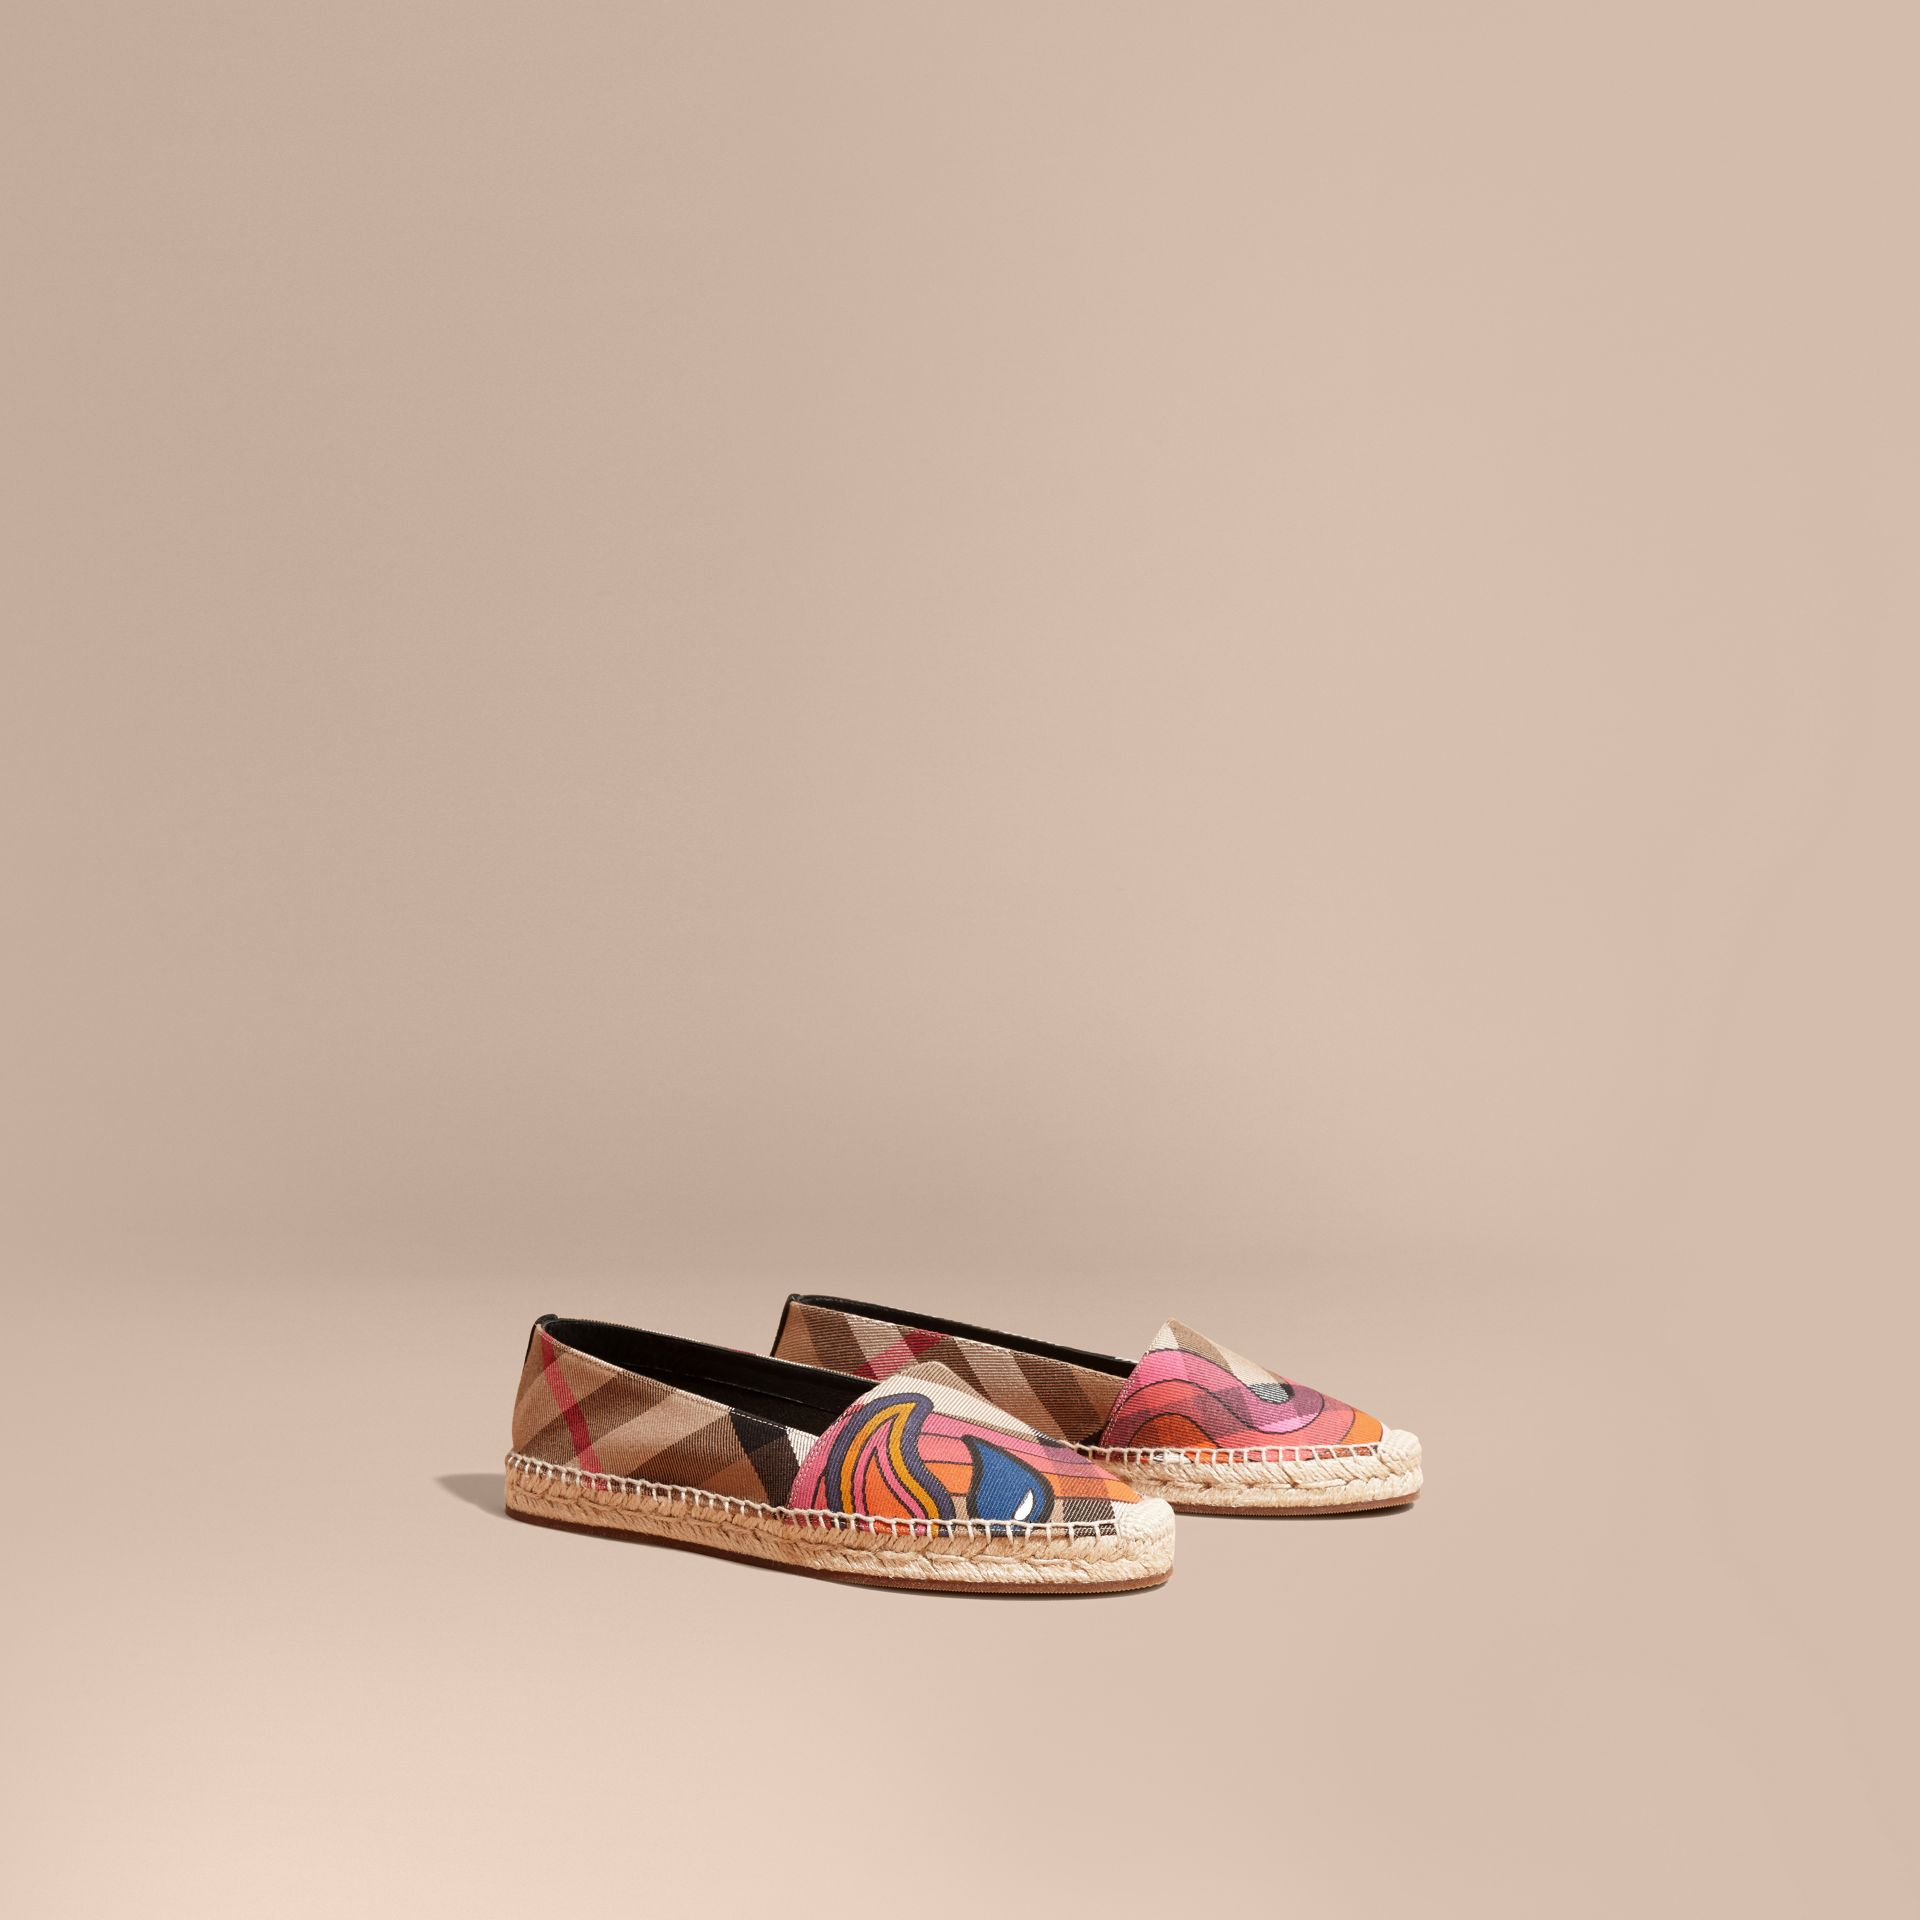 Classic check Rainbow Graphic Print Canvas and Suede Check Espadrilles - gallery image 1